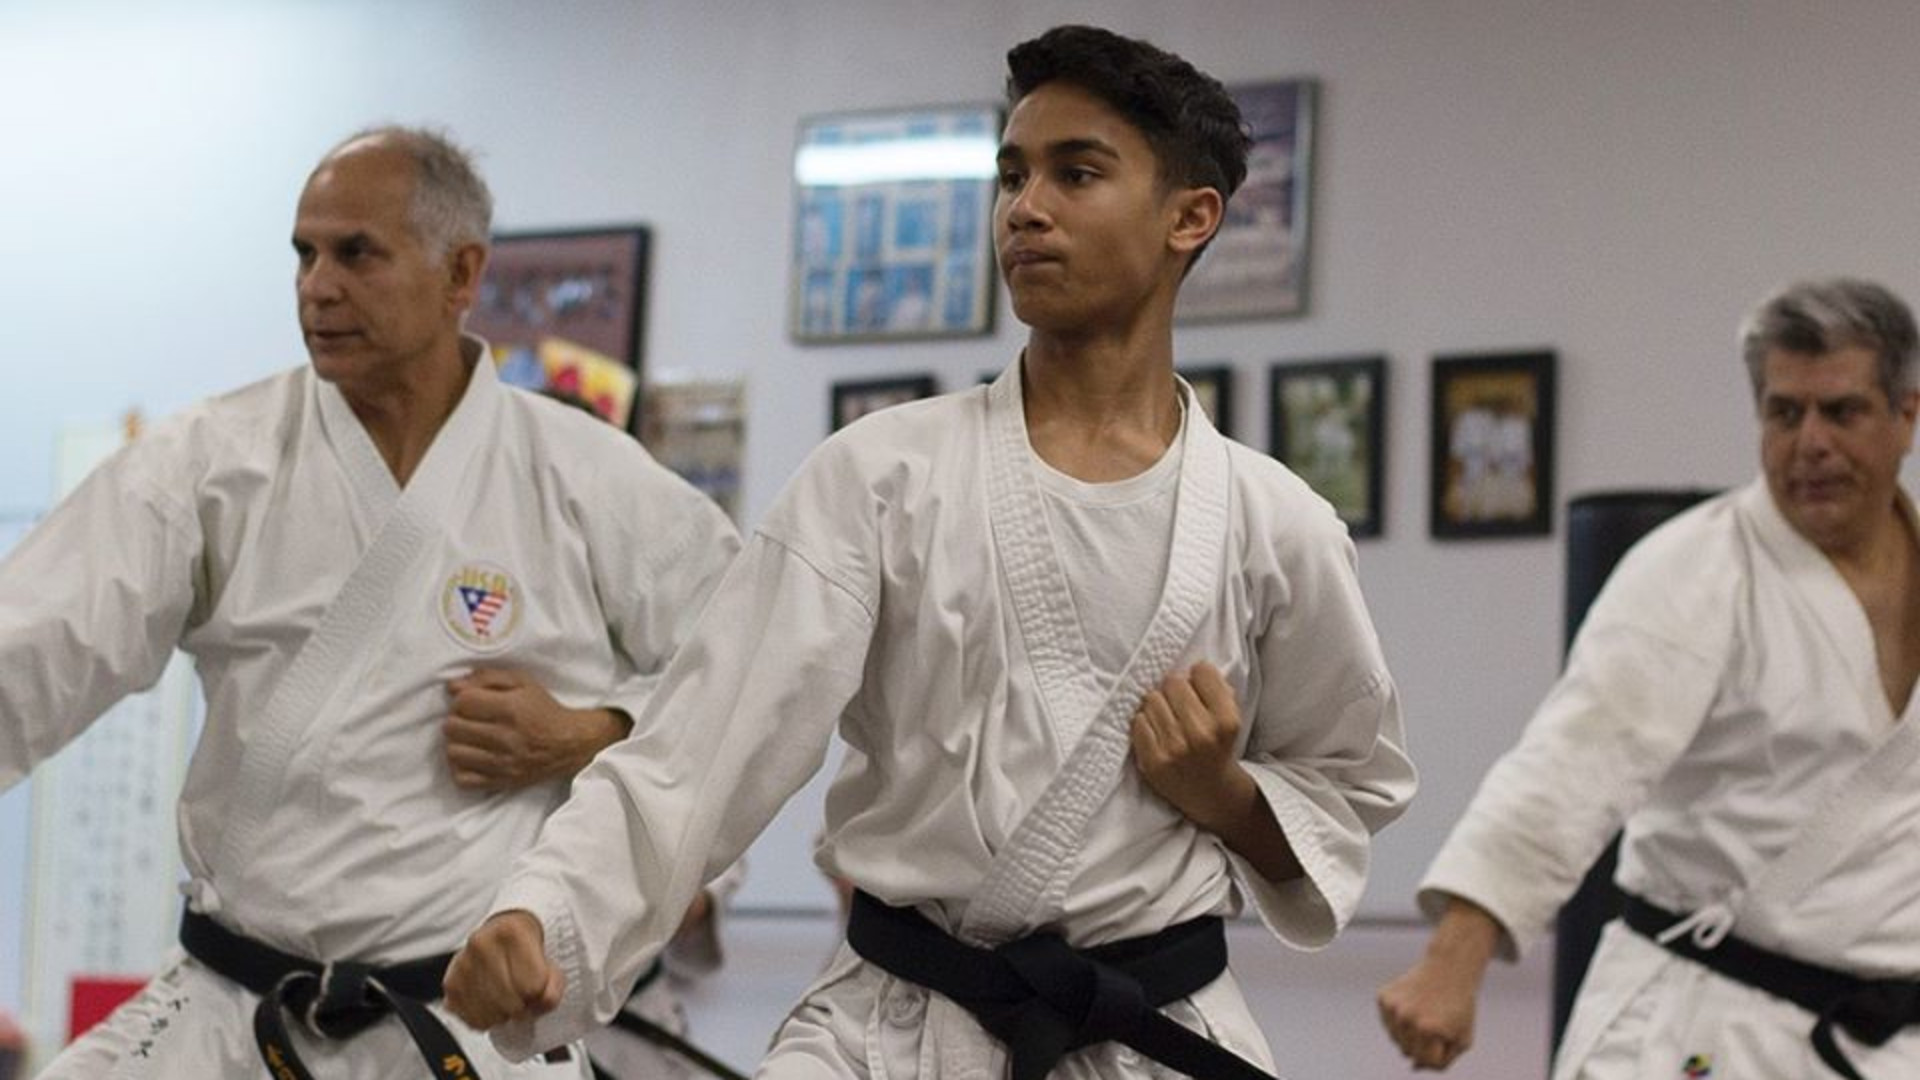 <style> v {   text-shadow: 2px 2px 8px #1e2a55; } </style><v><strong>Karate - Tai Chi - BJJ - Private Training</strong></v>